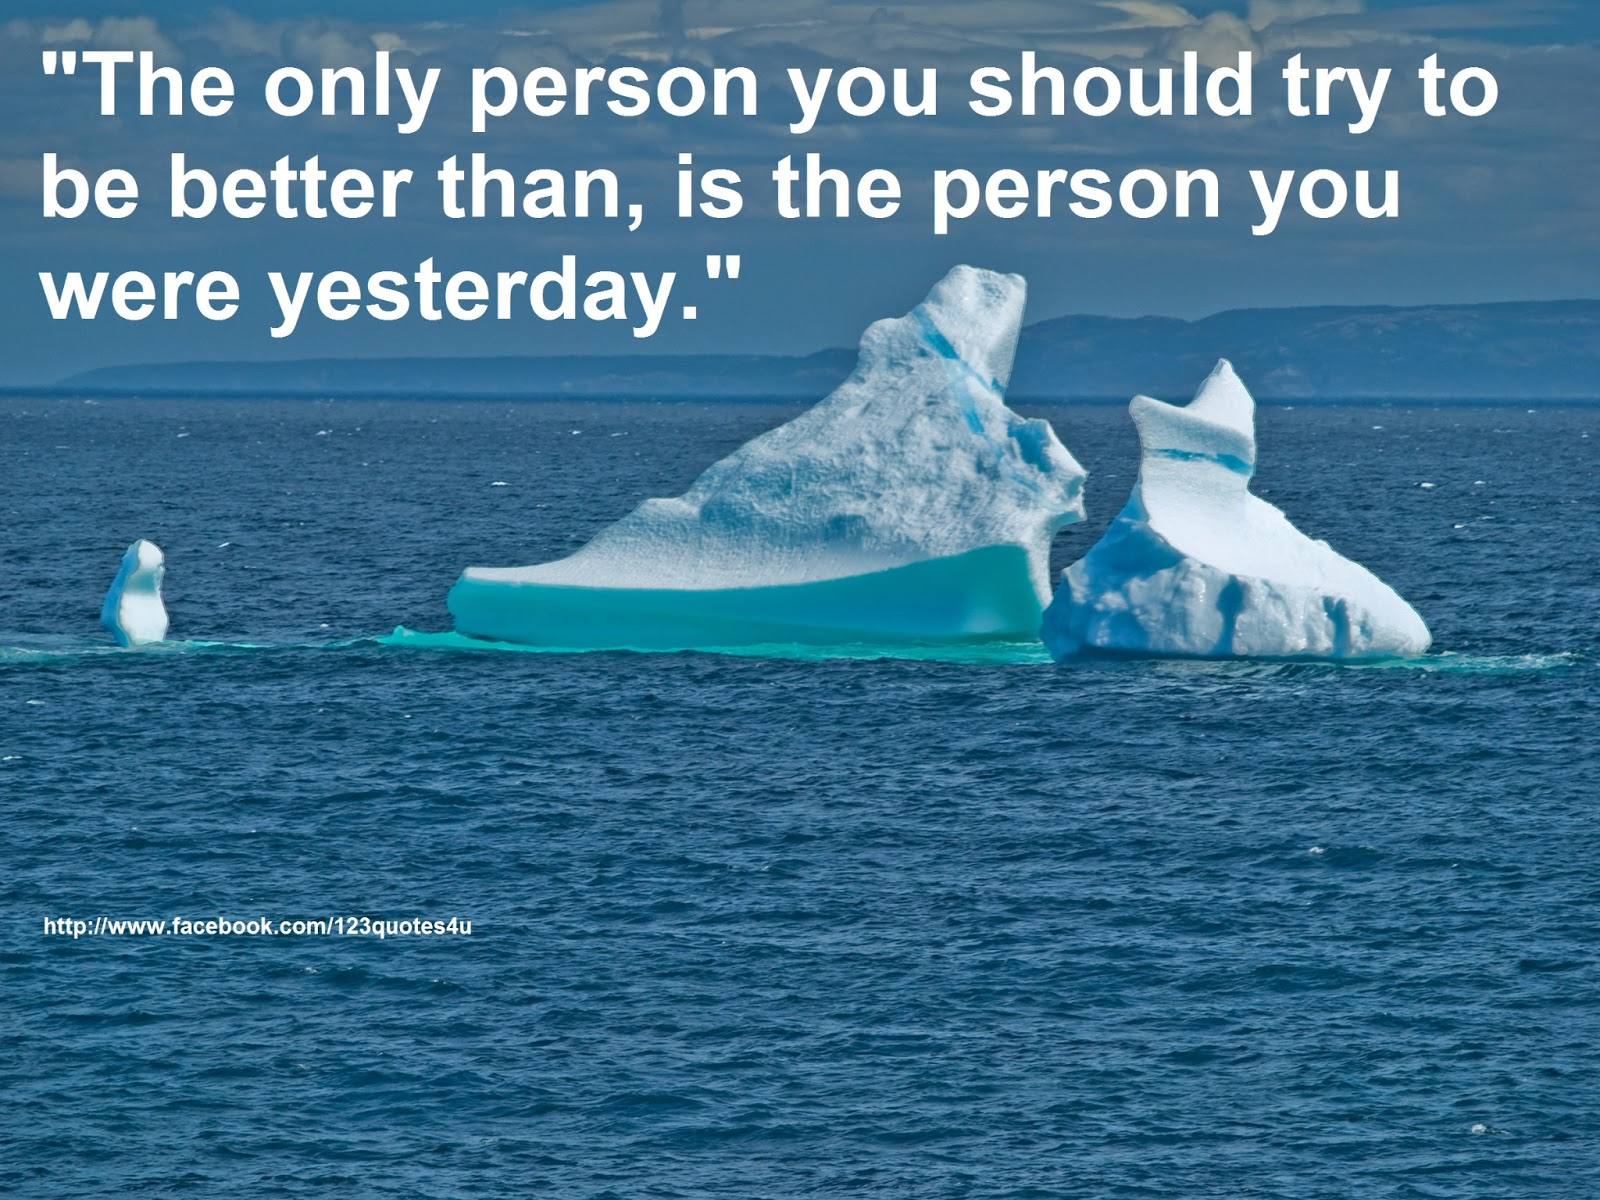 Quotes About Life: The Only Person You Should Try To Be